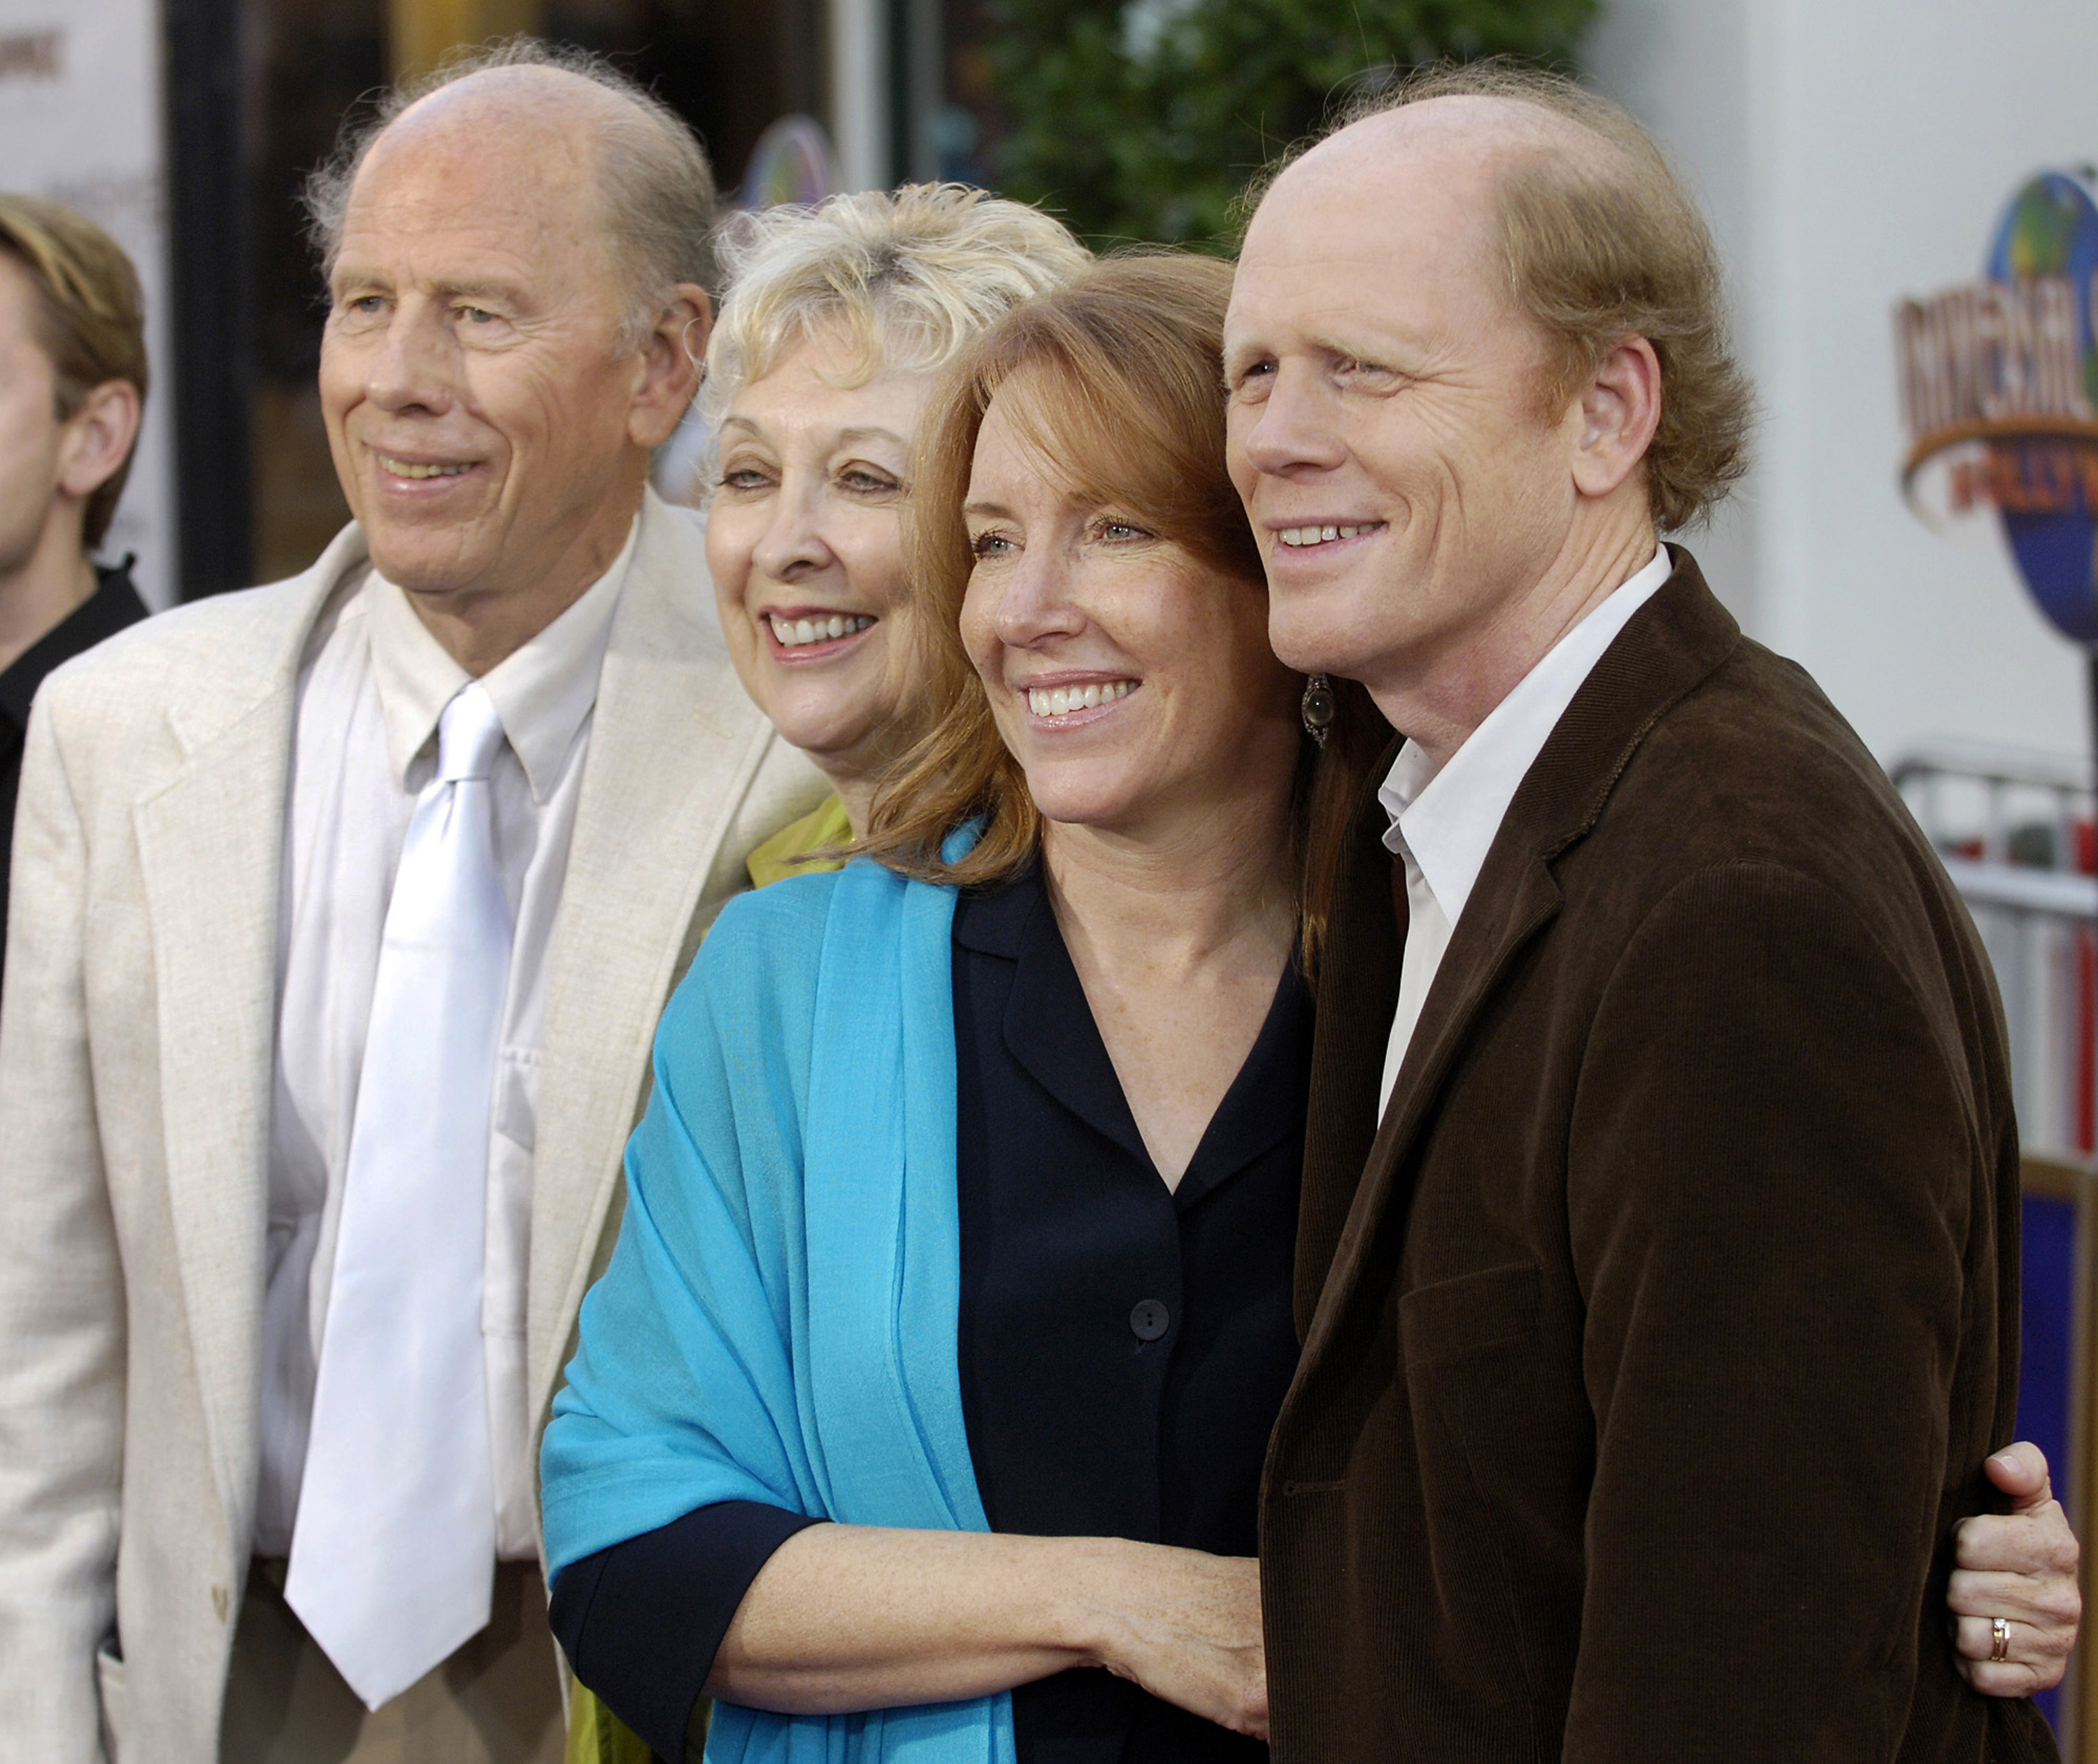 "FILE - In this May 23, 2005, file photo, Ron Howard, far right, director of the new film ""Cinderella Man,"" poses with his wife Cheryl, second from right, and his parents, actor/director Rance Howard and actress Jean Speegle Howard, at the premiere of the film in the Universal City section of Los Angeles. Director Ron Howard says his actor father Rance Howard has died at age 89. Howard announced his father's passing Saturday, Nov. 25, 2017, on Twitter. He praised his father for his ability to balance ambition with great personal integrity.  (AP Photo/Chris Pizzello, File)"